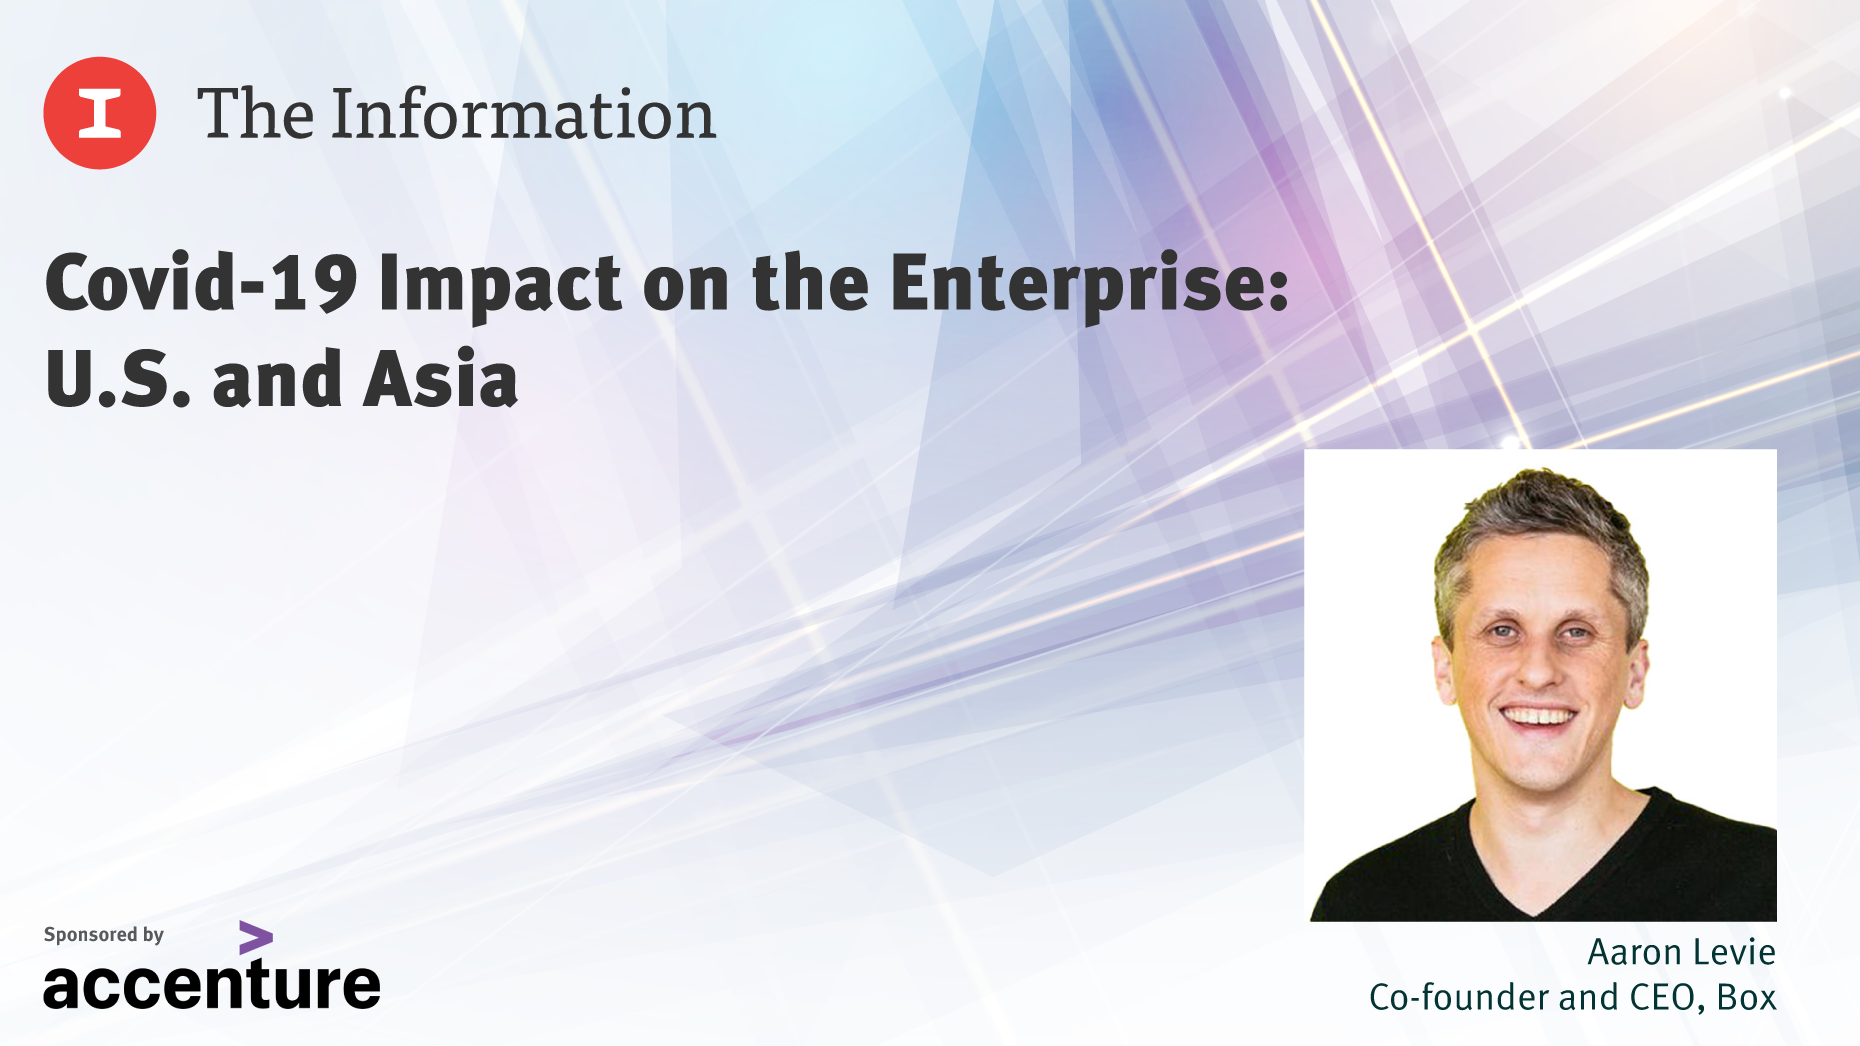 Covid-19 Impact on the Enterprise: U.S. and Asia